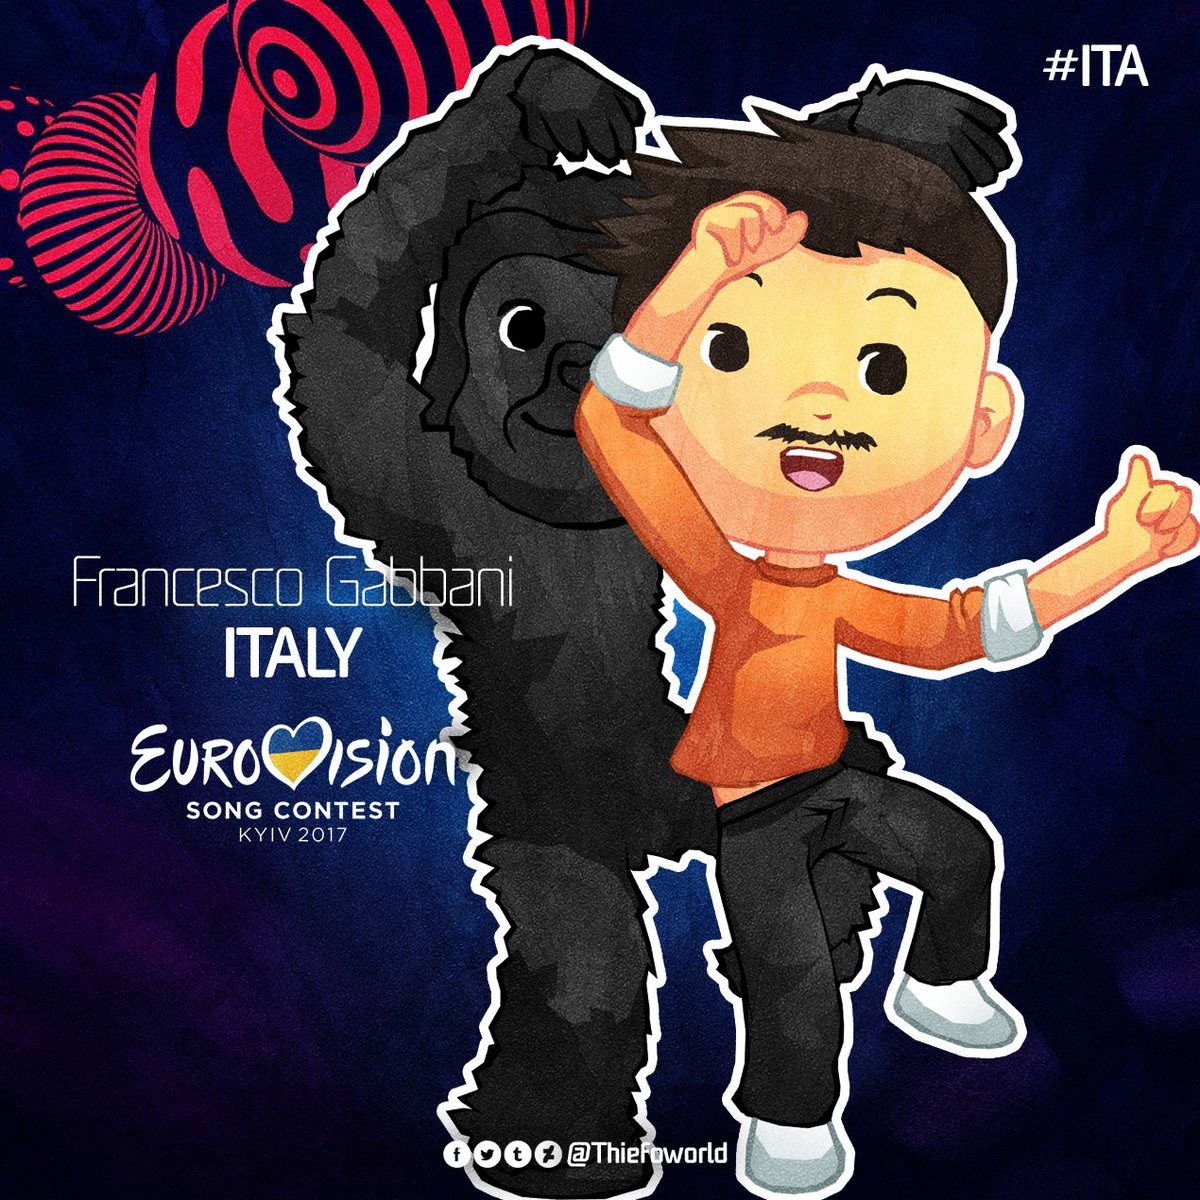 From #Italy: @frankgabbani with &quot;Occidentali&#39;s Karma&quot; #Eurovision  #ITA <br>http://pic.twitter.com/bDeR2EvAKw